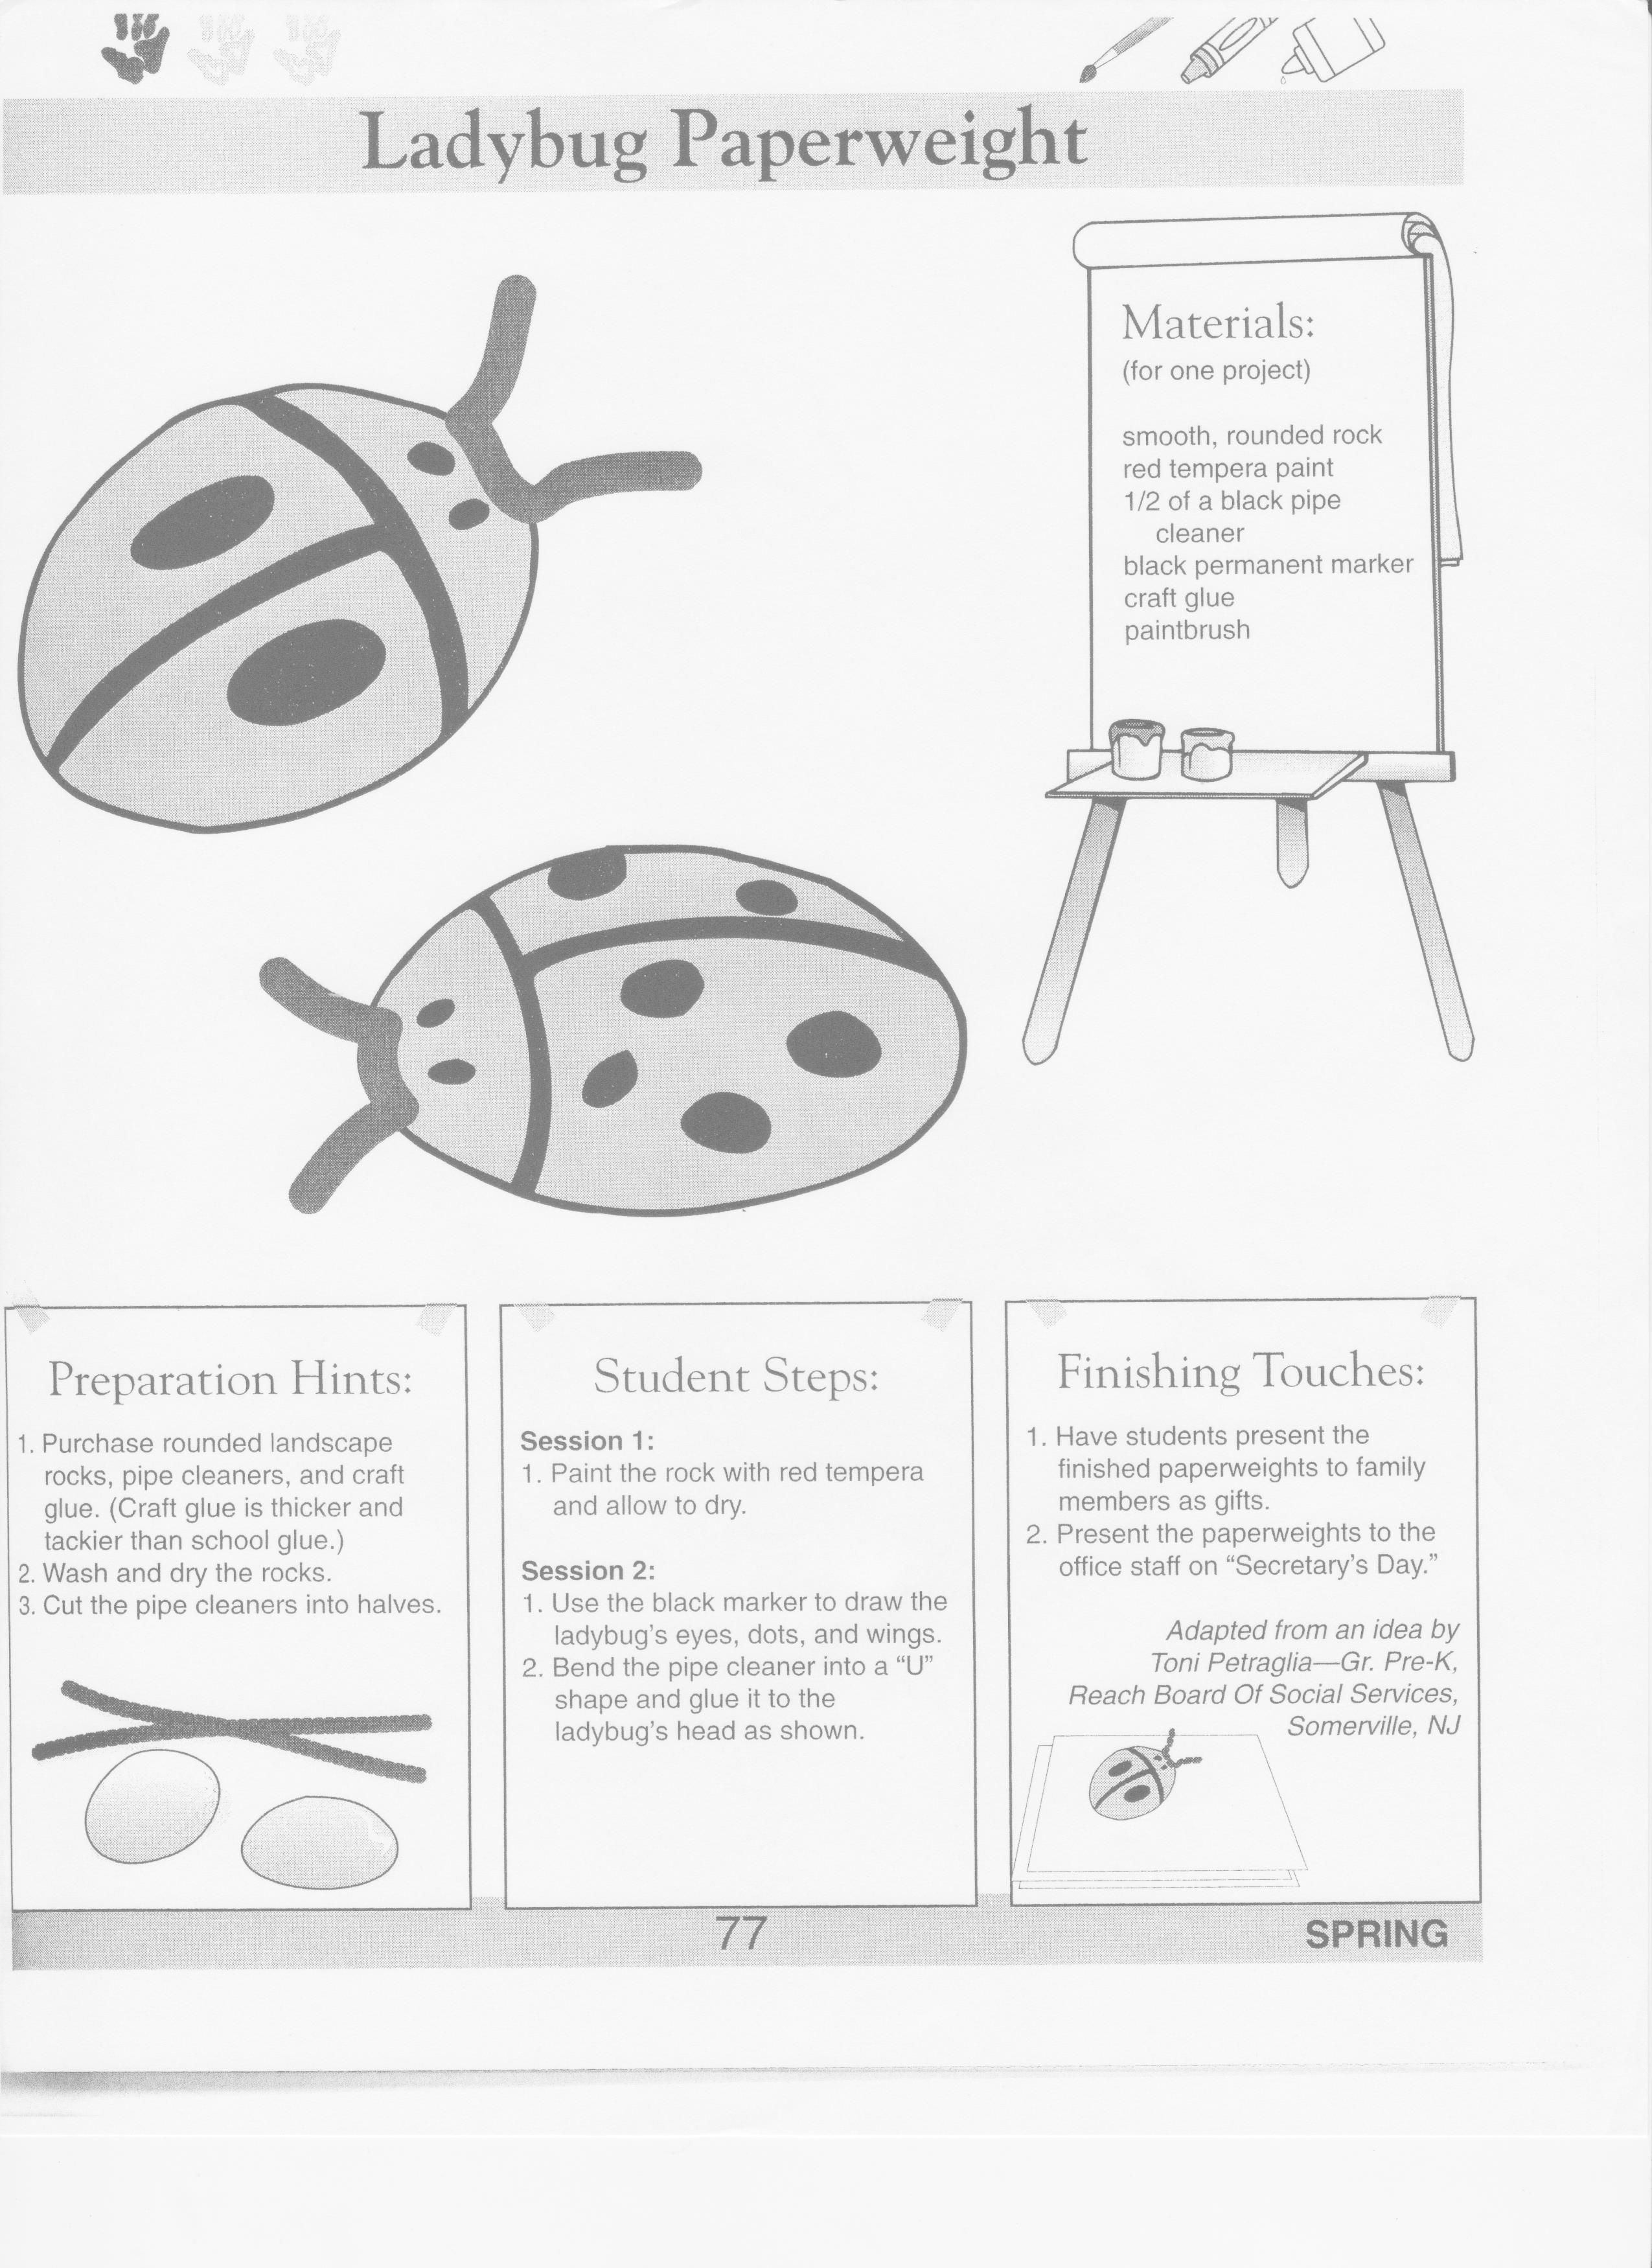 Ladybug Paperweight Early Childhood Curriculum Ideas Place